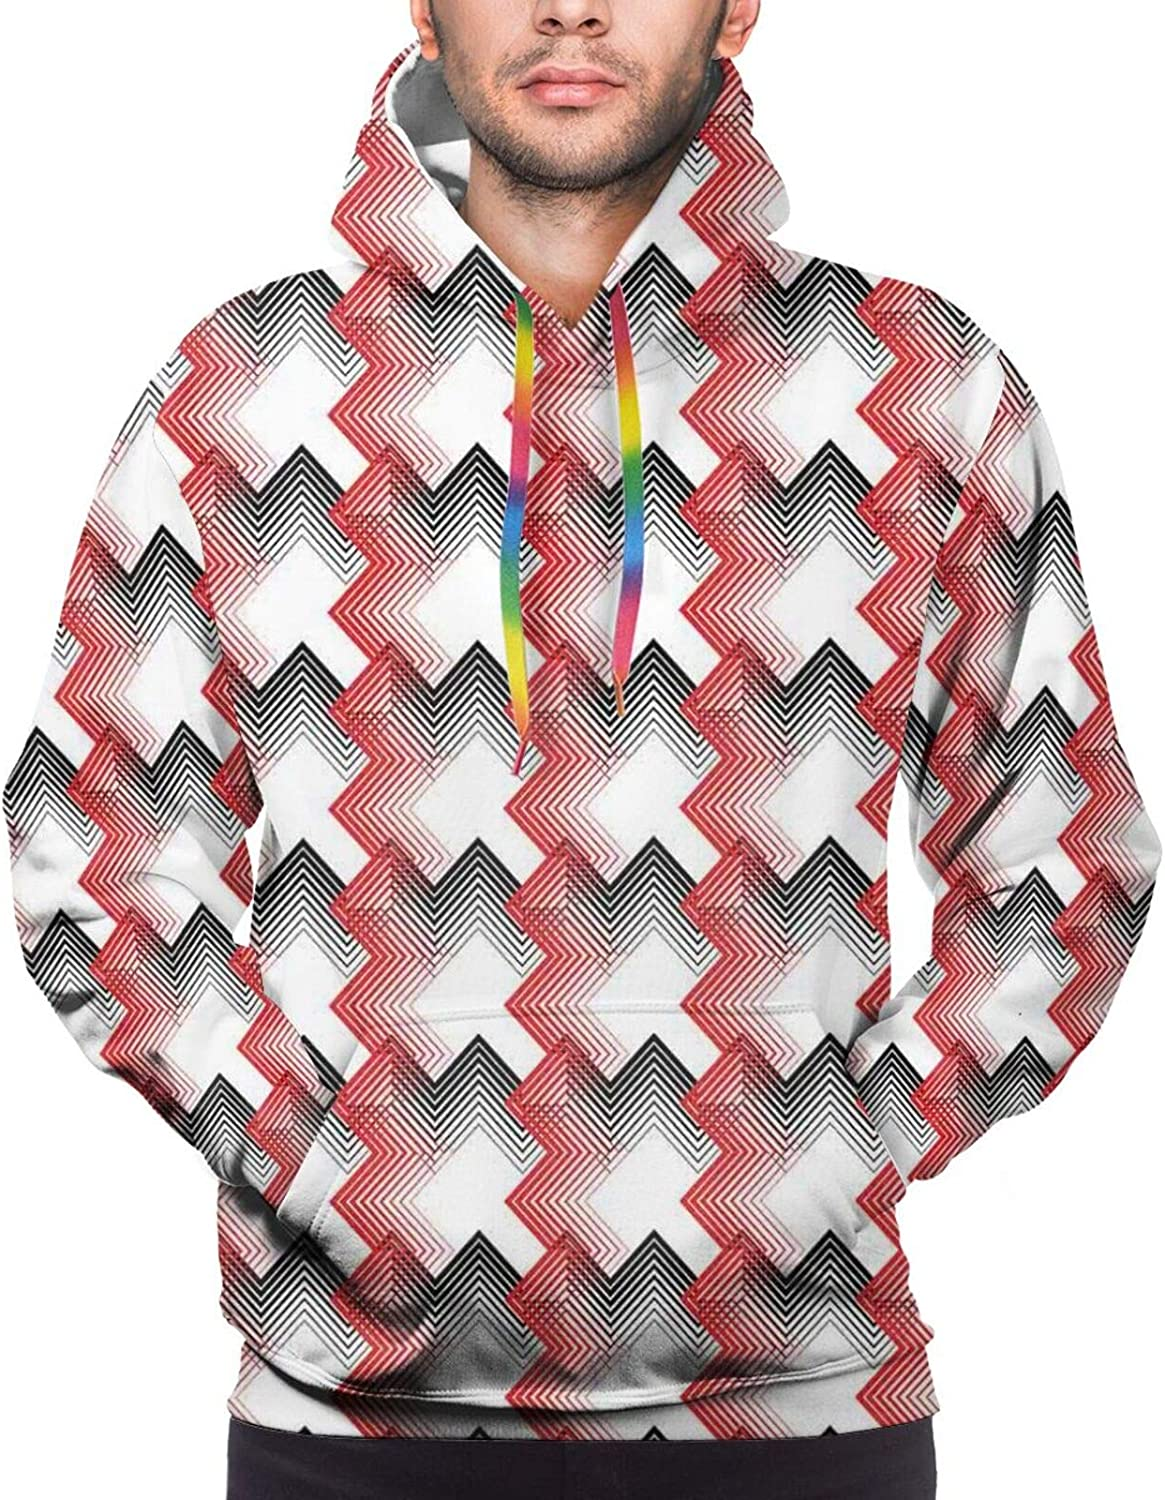 TENJONE Men's Hoodies Sweatshirts,Abstract Diagonal Checked Mosaic Pattern with Shabby Colored Squares and Lines